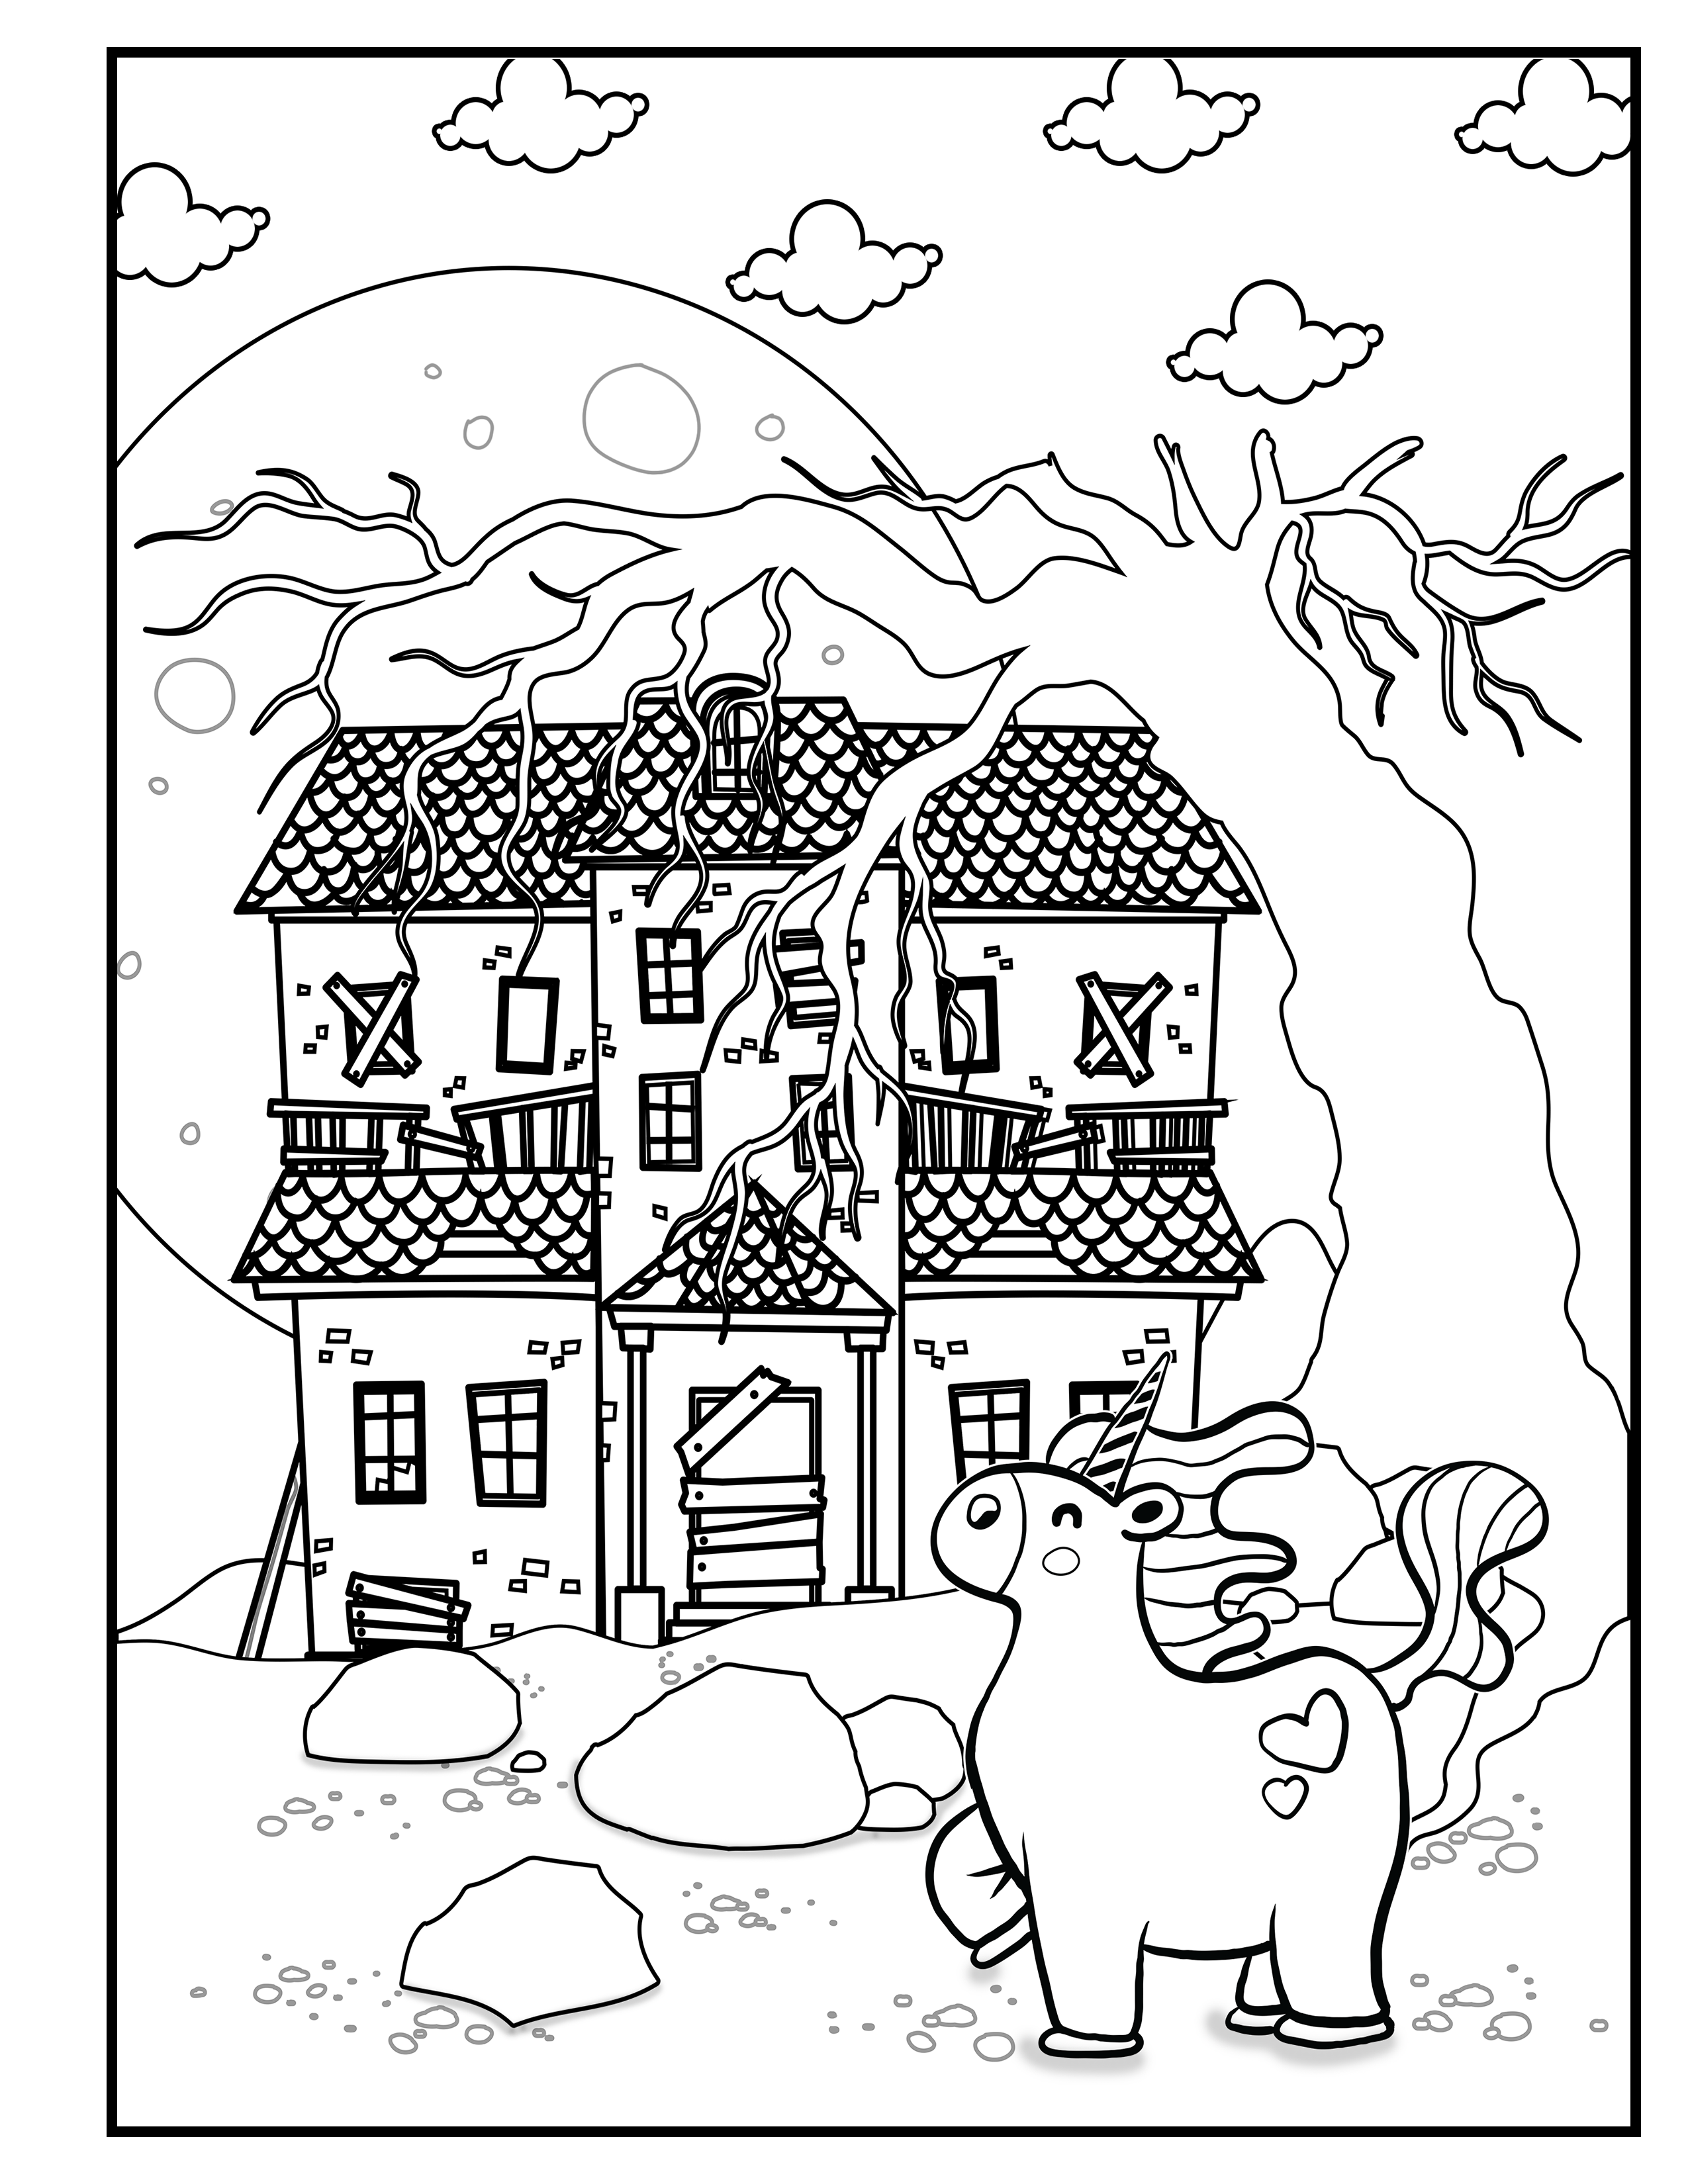 Unicorn Guards Creepy House Unicorn Halloween Unicorn Coloring Book For Kids Image 22 Coloring Books Halloween Coloring Book Coloring Pages For Boys